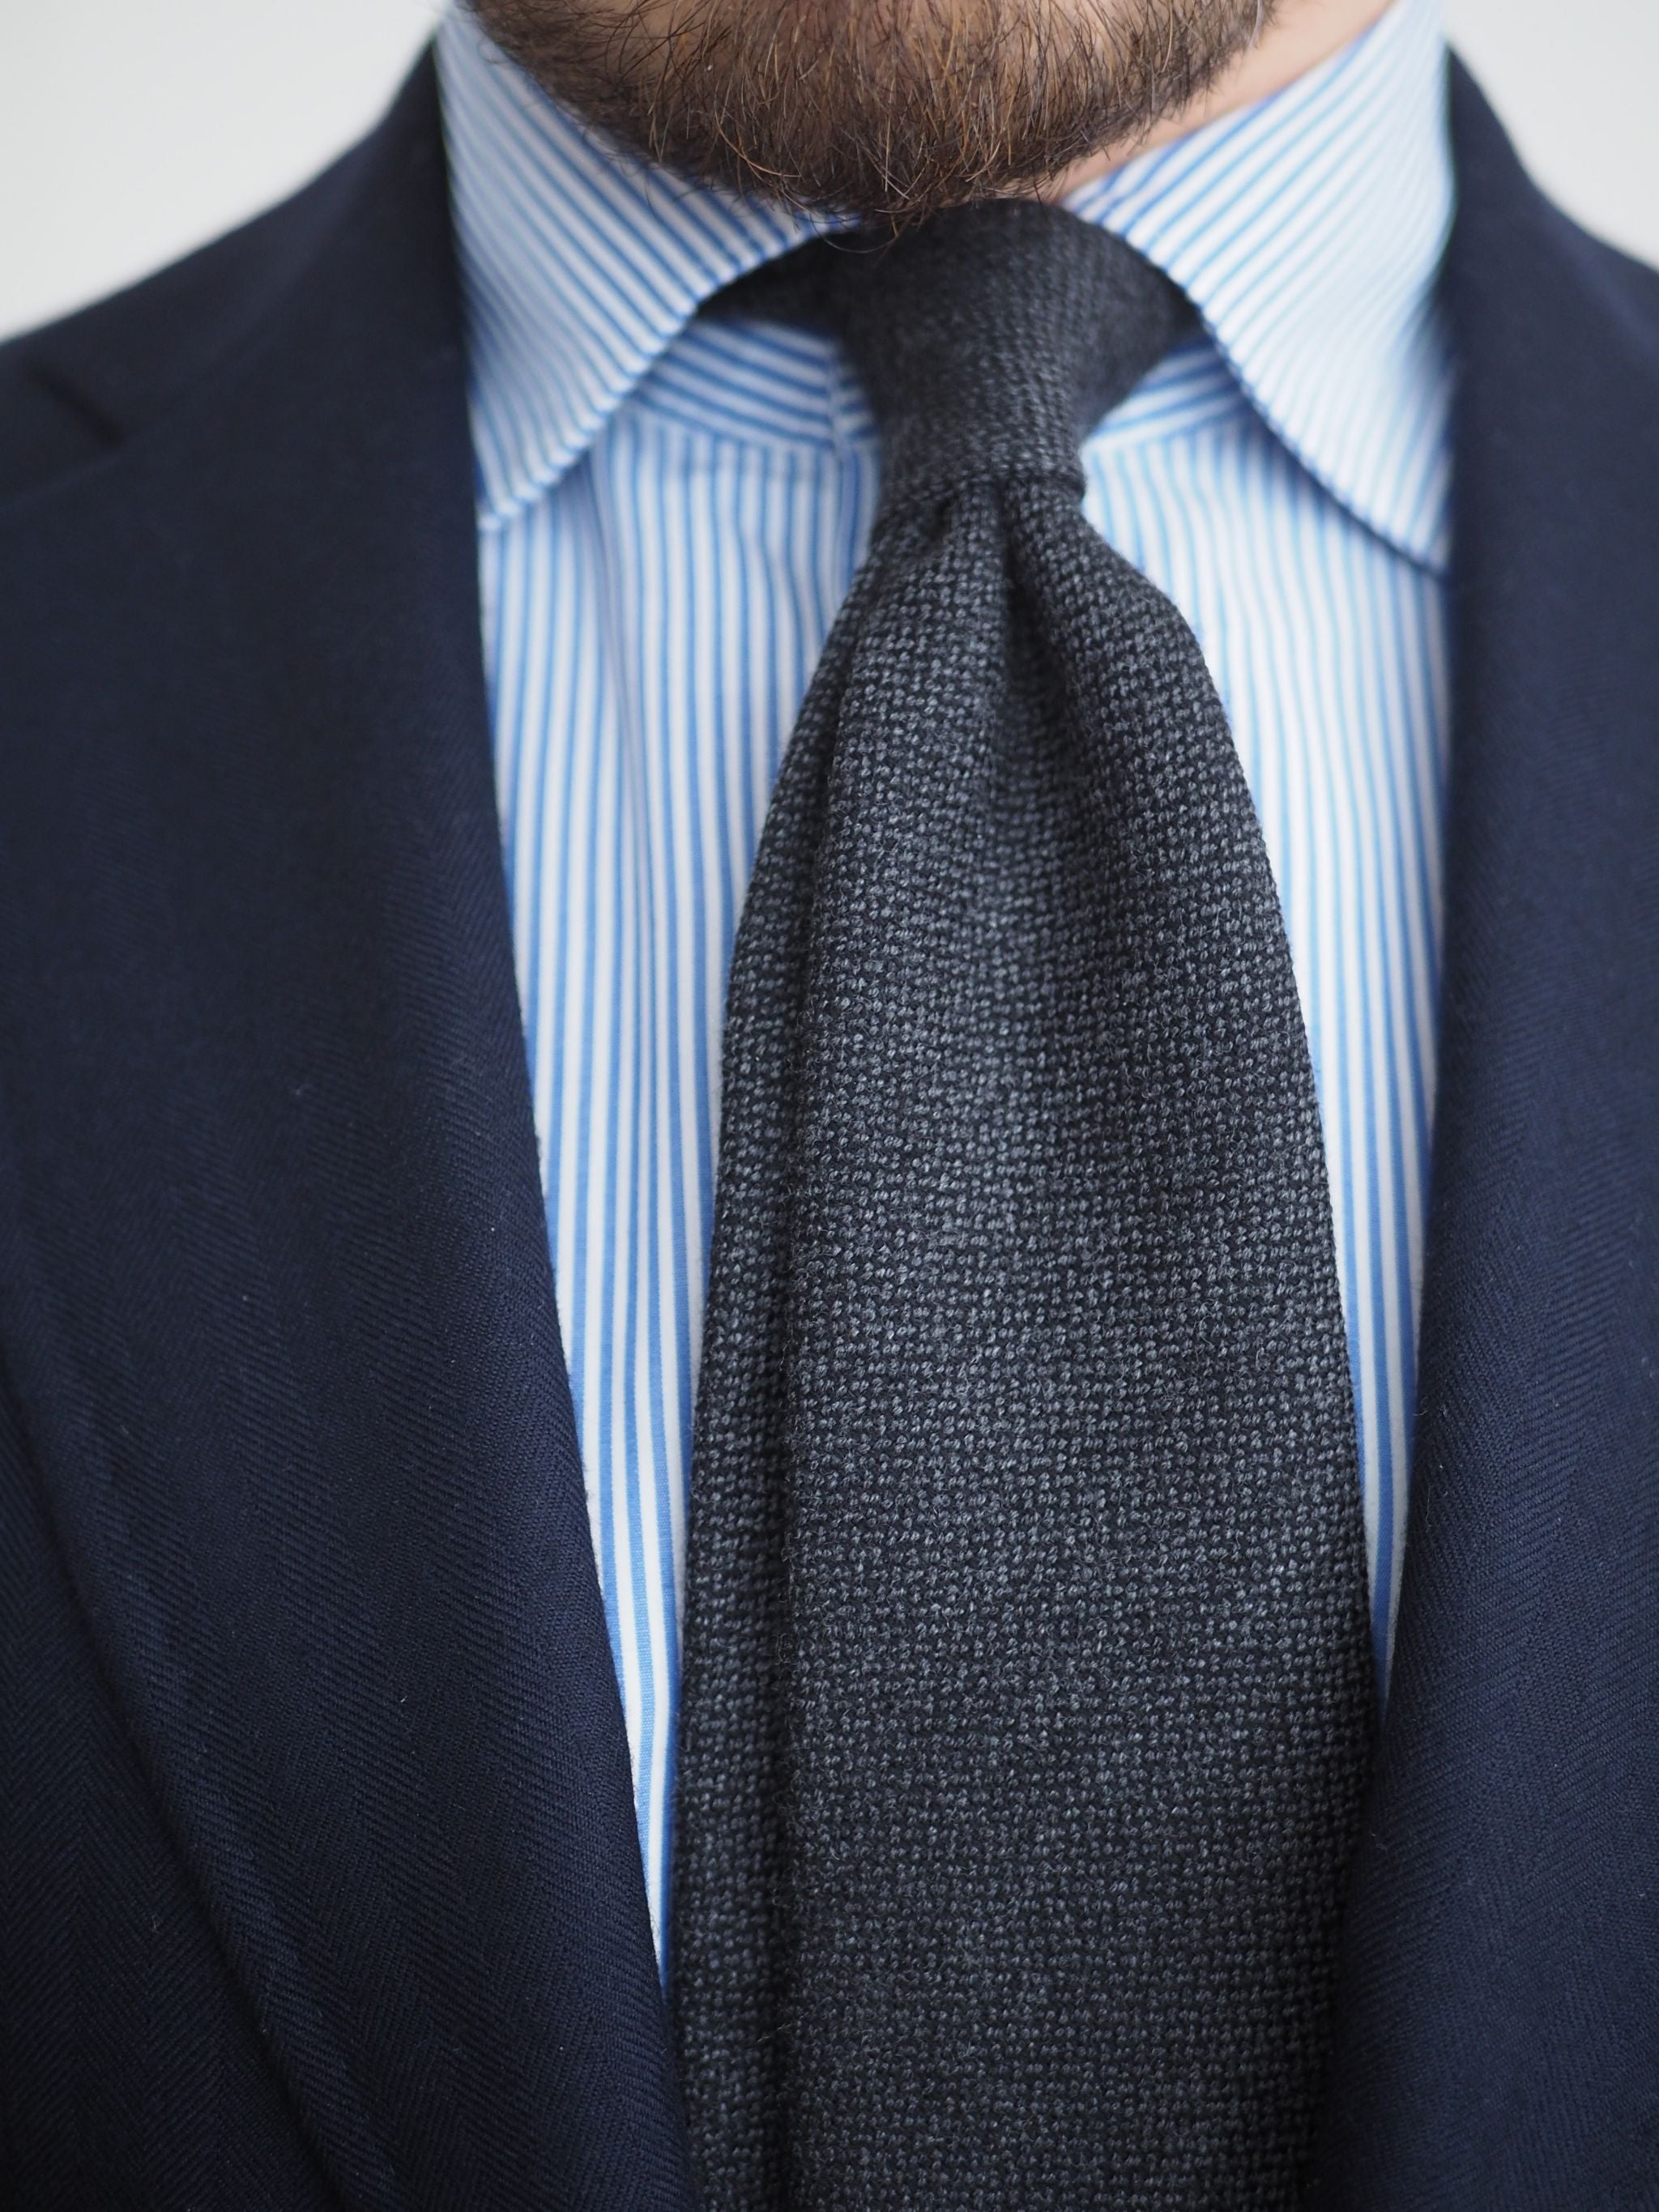 Blue suits - Close-up of the dark gray wool tie and four-in-hand knot.